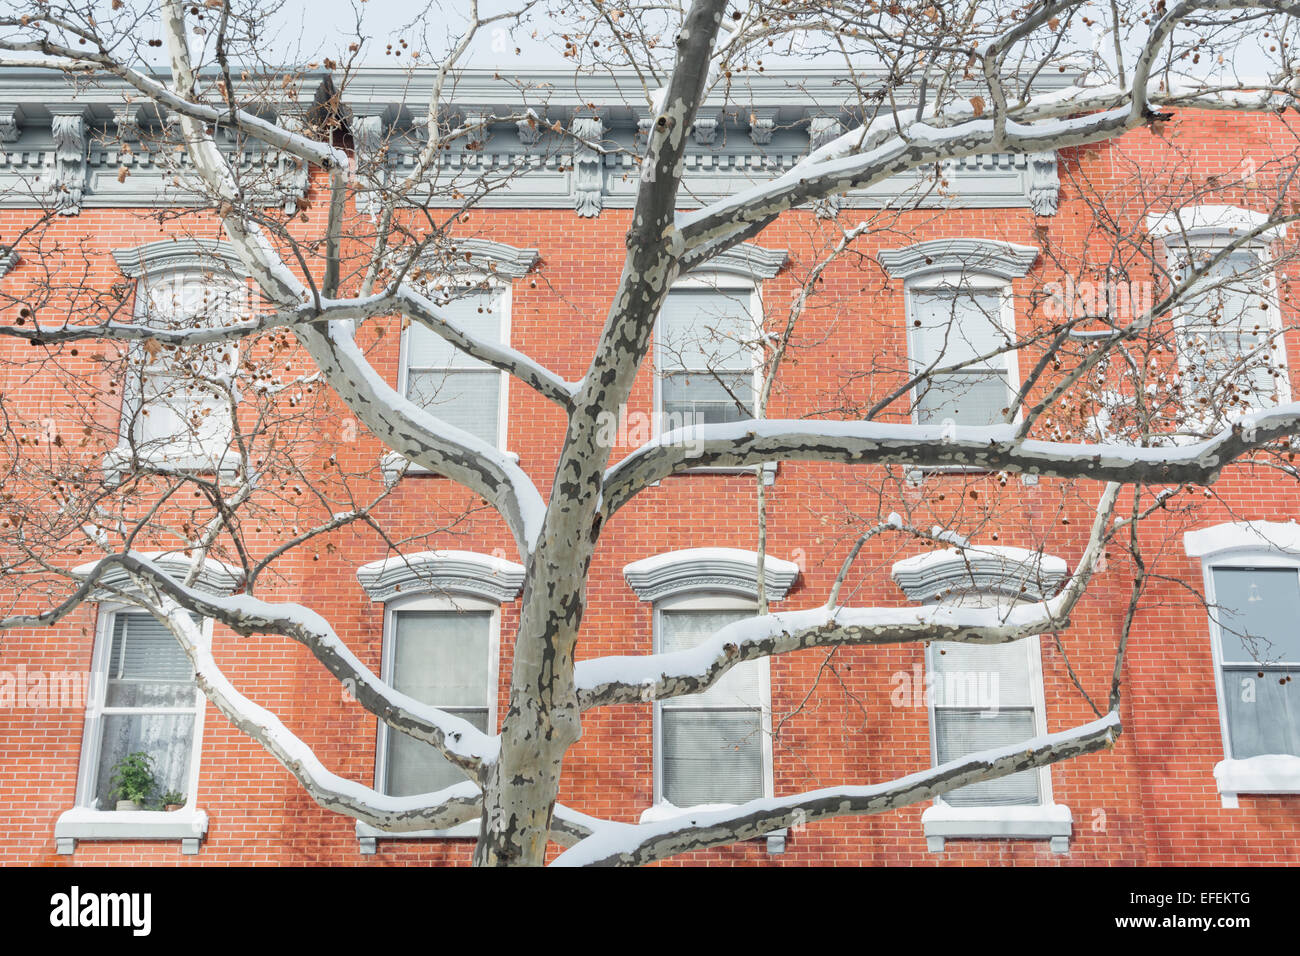 Exterior of row houses and tree covered with snow. Greenpoint Brooklyn. New York City - Stock Image